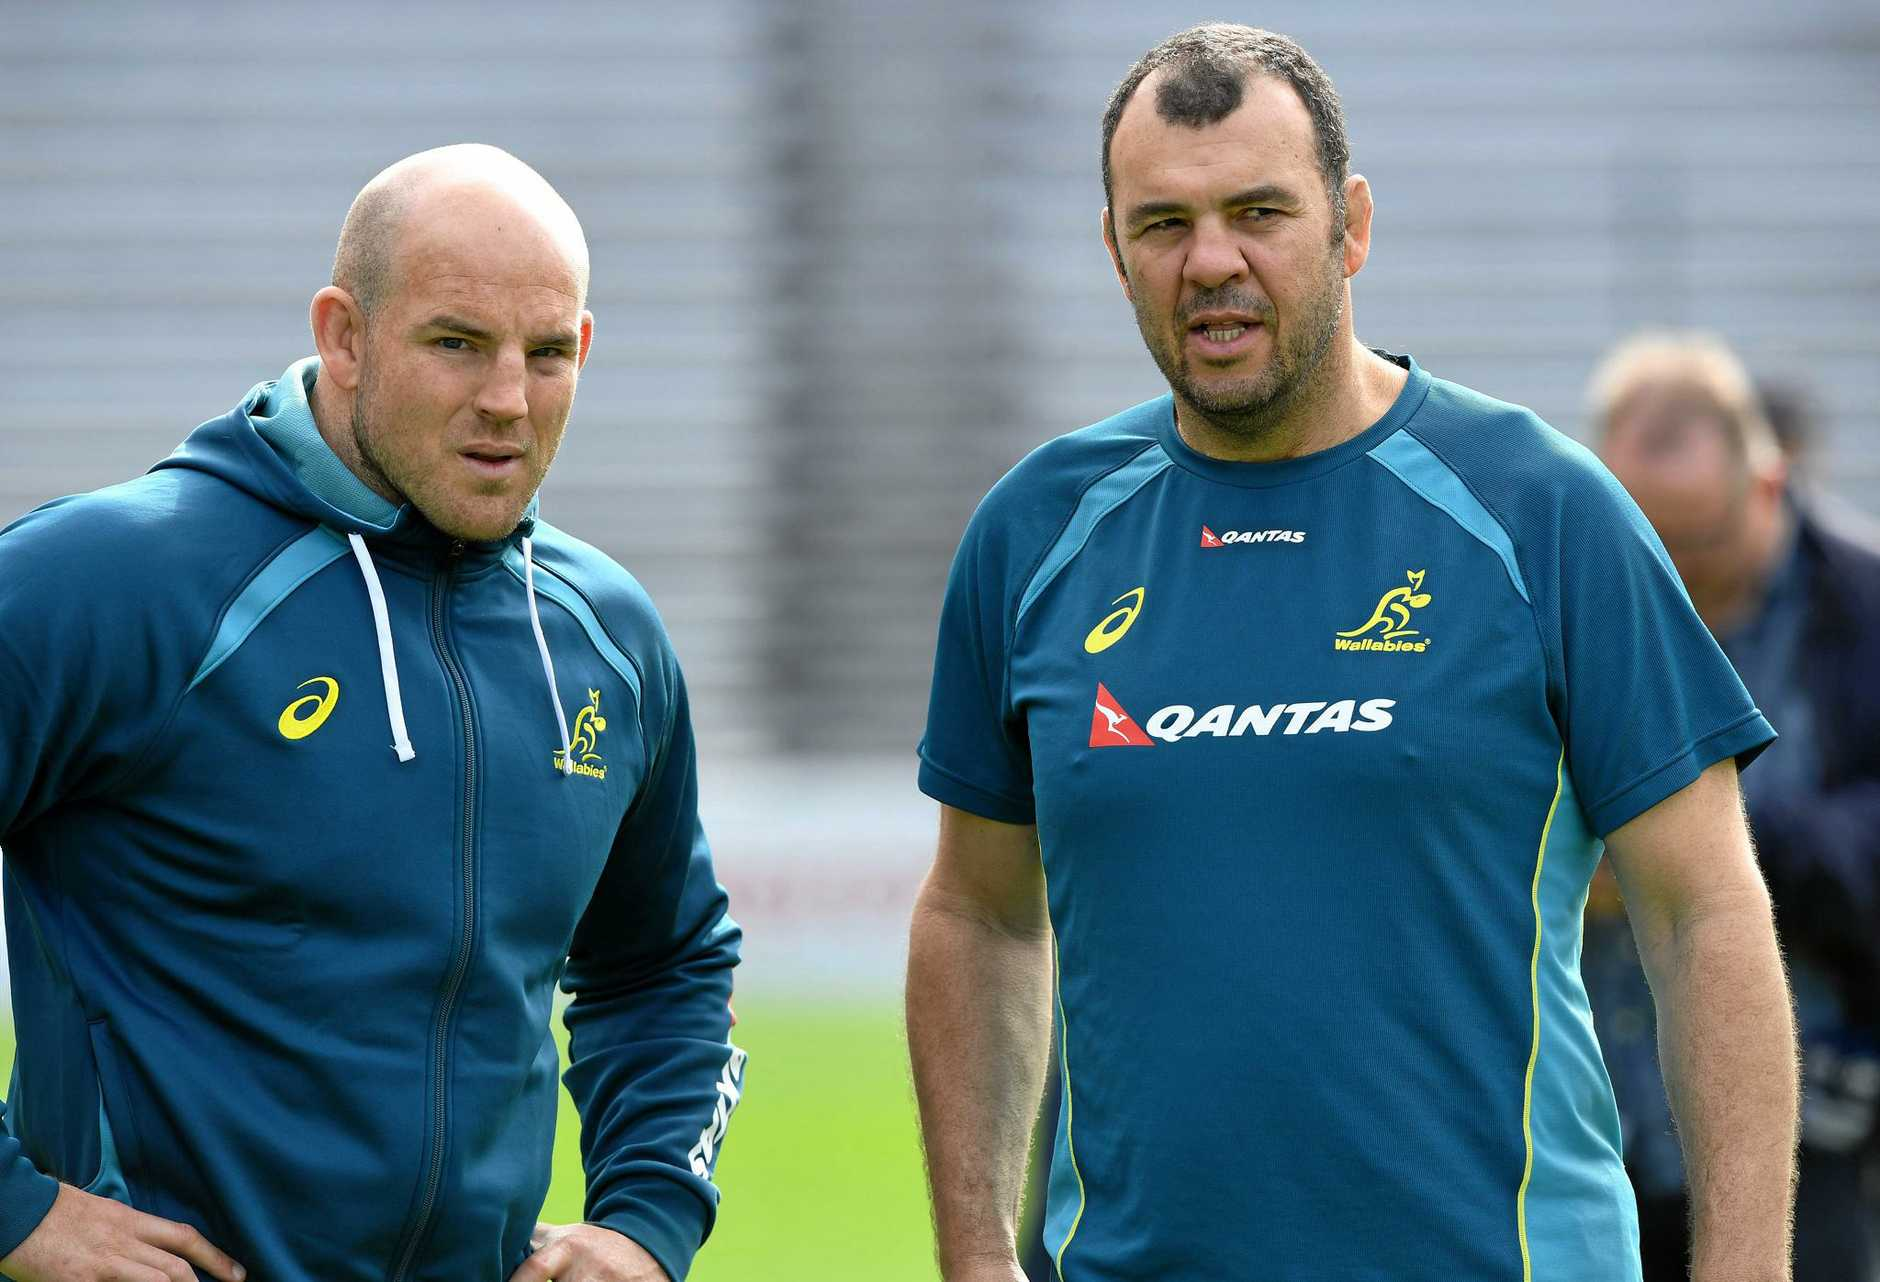 Stephen Moore (left) and coach Michael Cheika during the Australian Wallabies team training session at Ballymore in Brisbane, Tuesday, June 20, 2017. The Wallabies are in preparation for their Test match against Italy on Saturday at Suncorp Stadium. (AAP Image/Dave Hunt) NO ARCHIVING